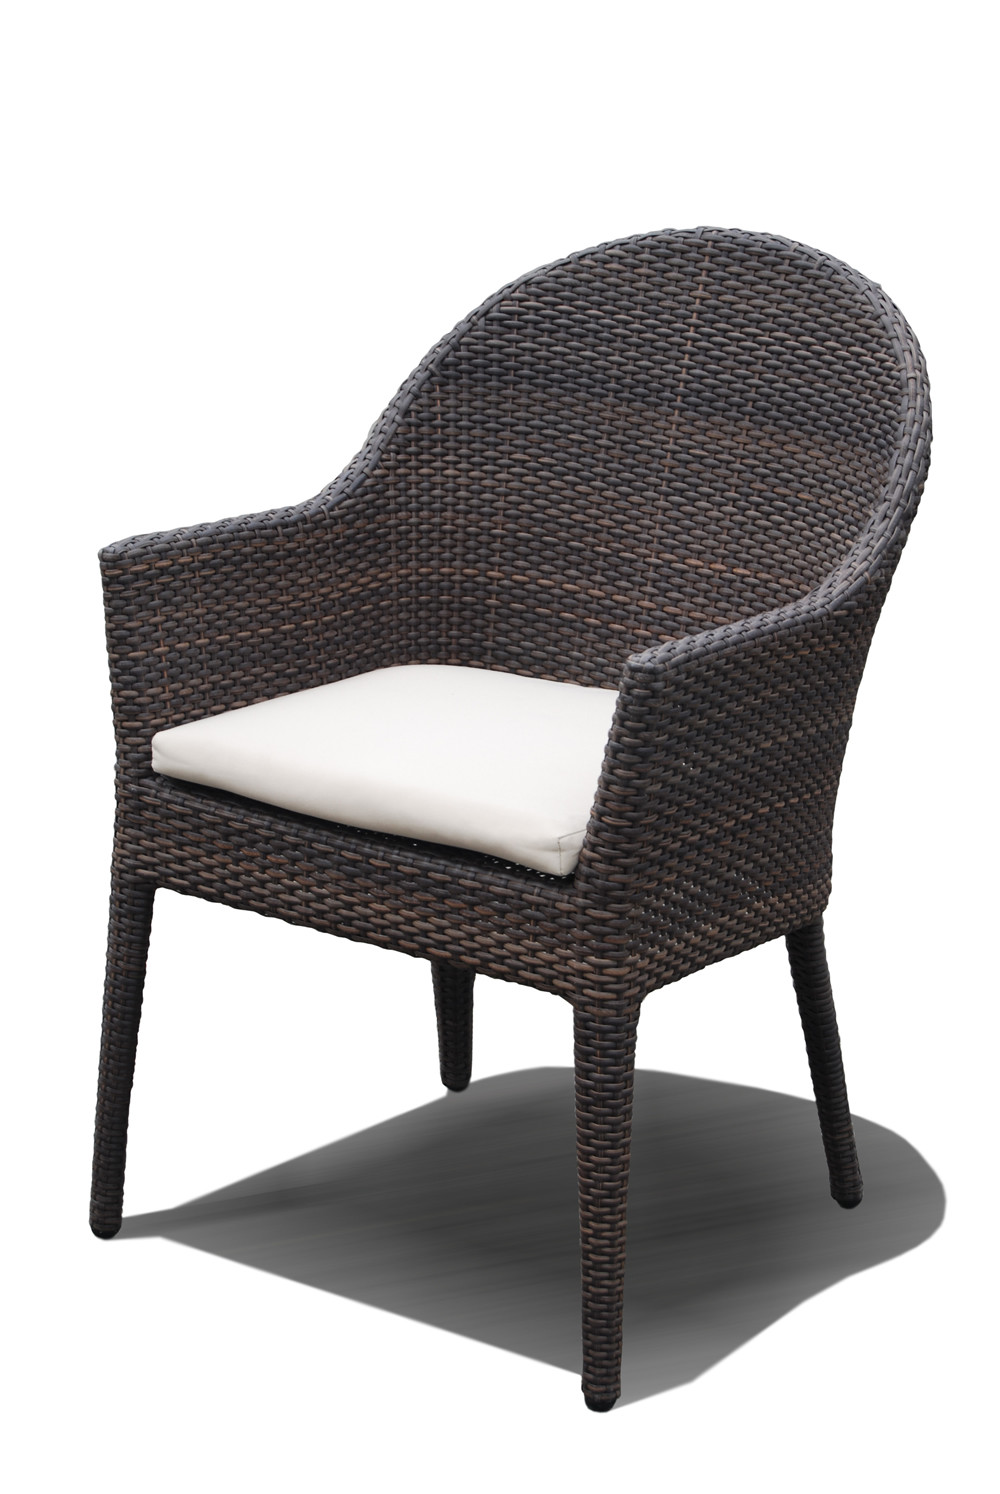 Hospitality Rattan Kenya Wicker Dining Chair Wicker